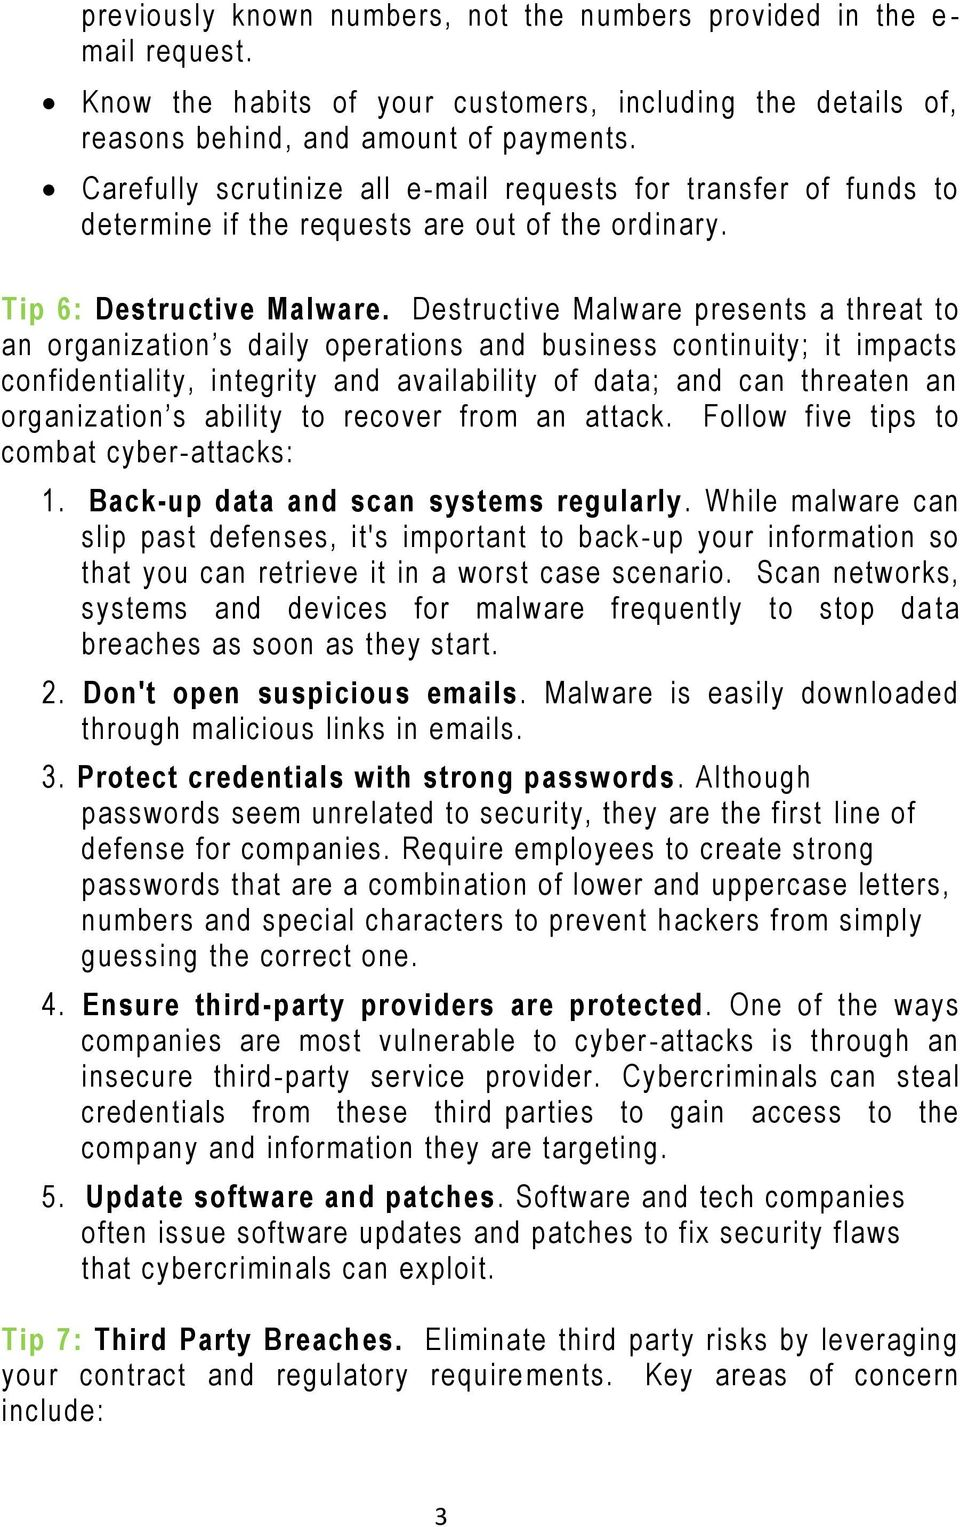 Destructive Malware presents a threat to an organization s daily operations and business continuity; it impacts confidentiality, integrity and availability of data; and can threaten an organization s